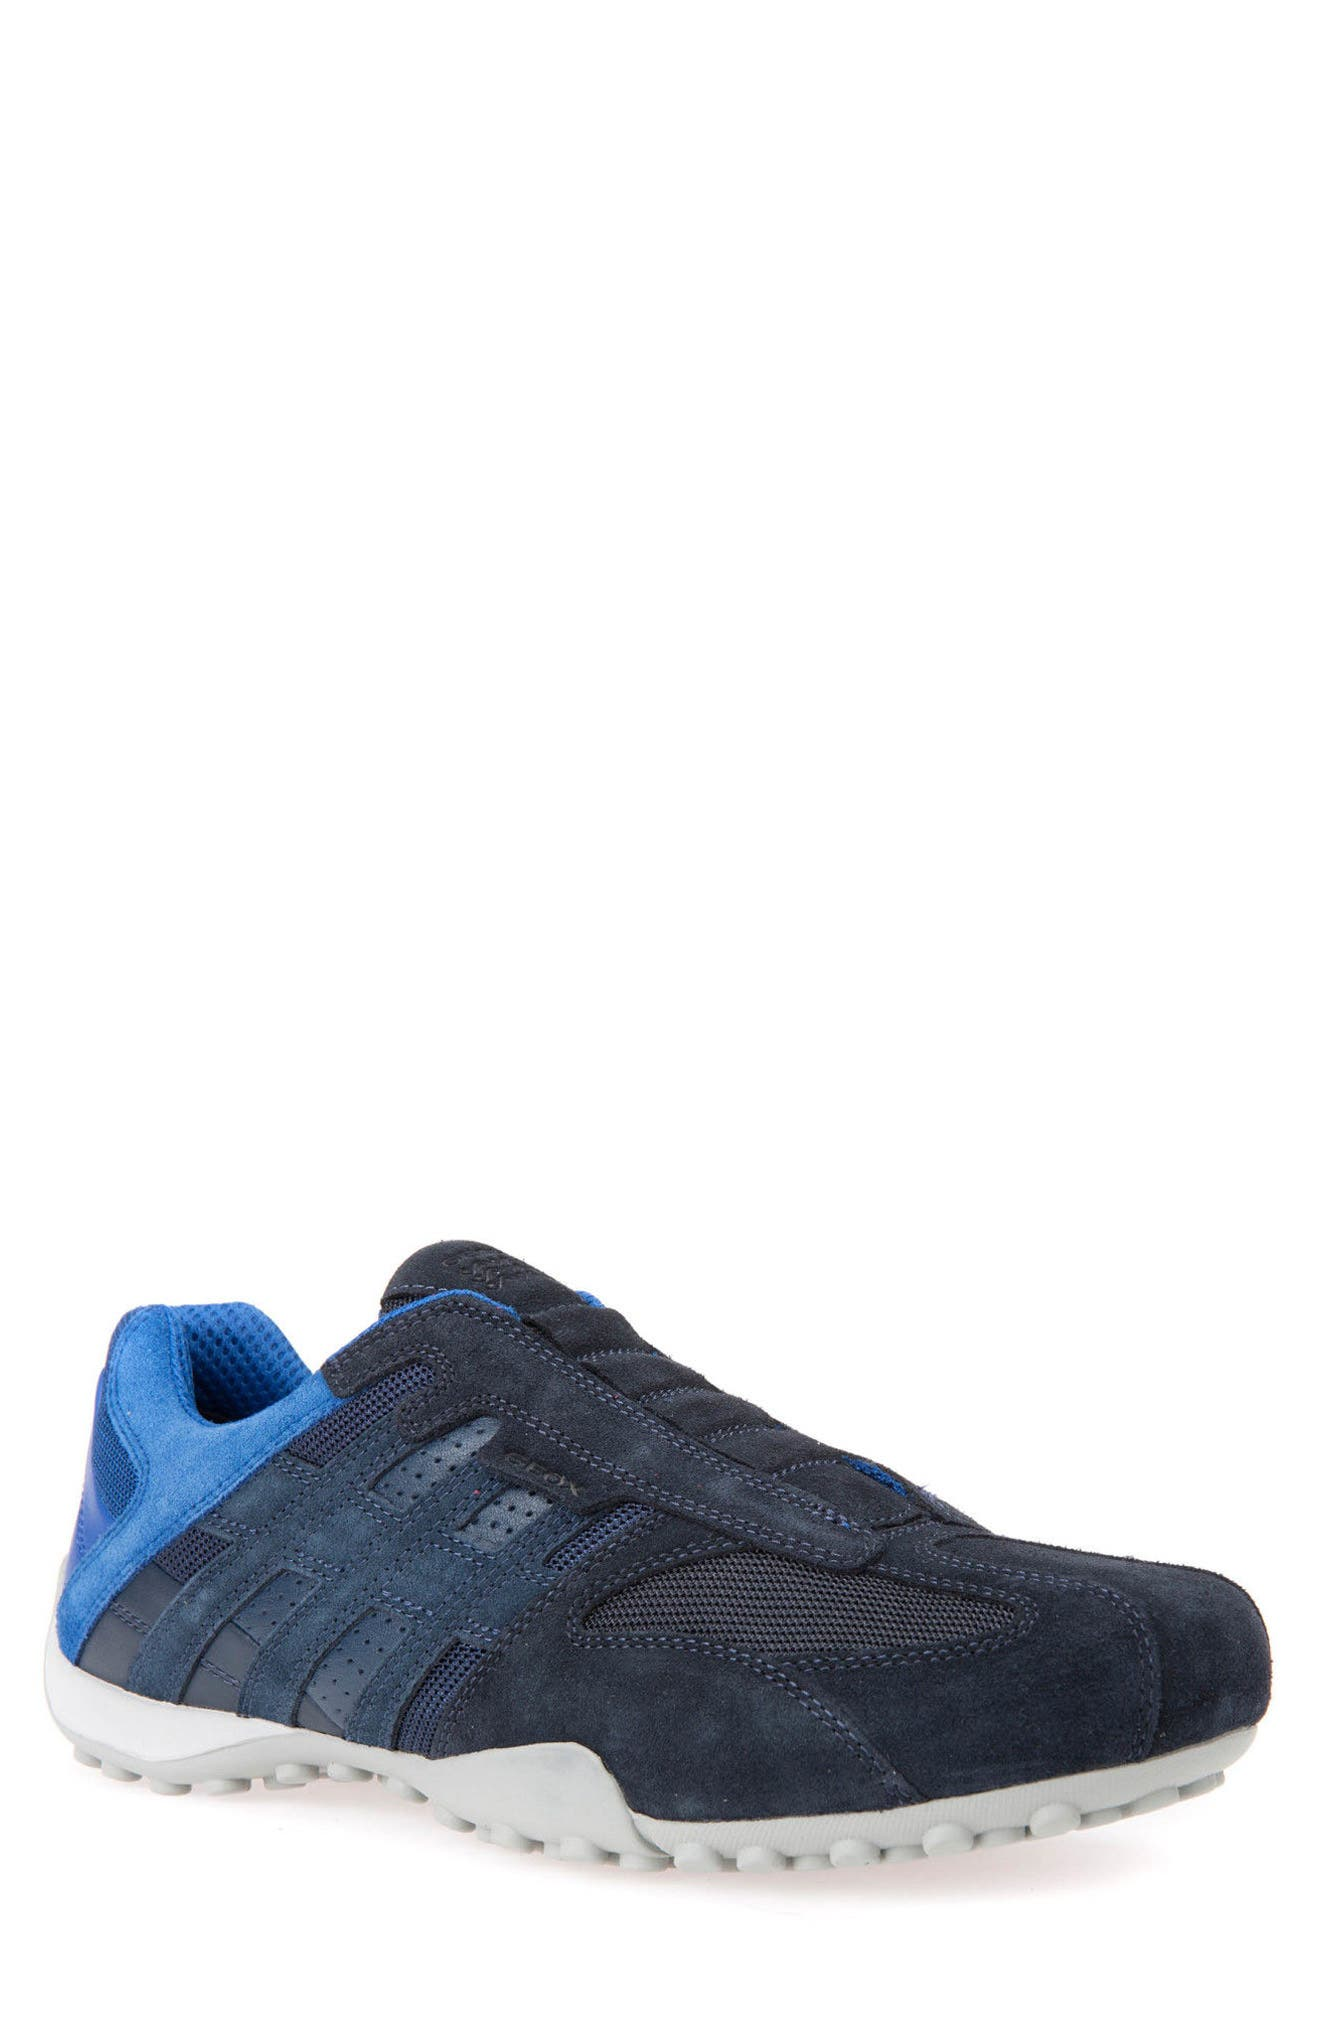 Snake 126 Laceless Low Top Sneaker,                         Main,                         color, Navy